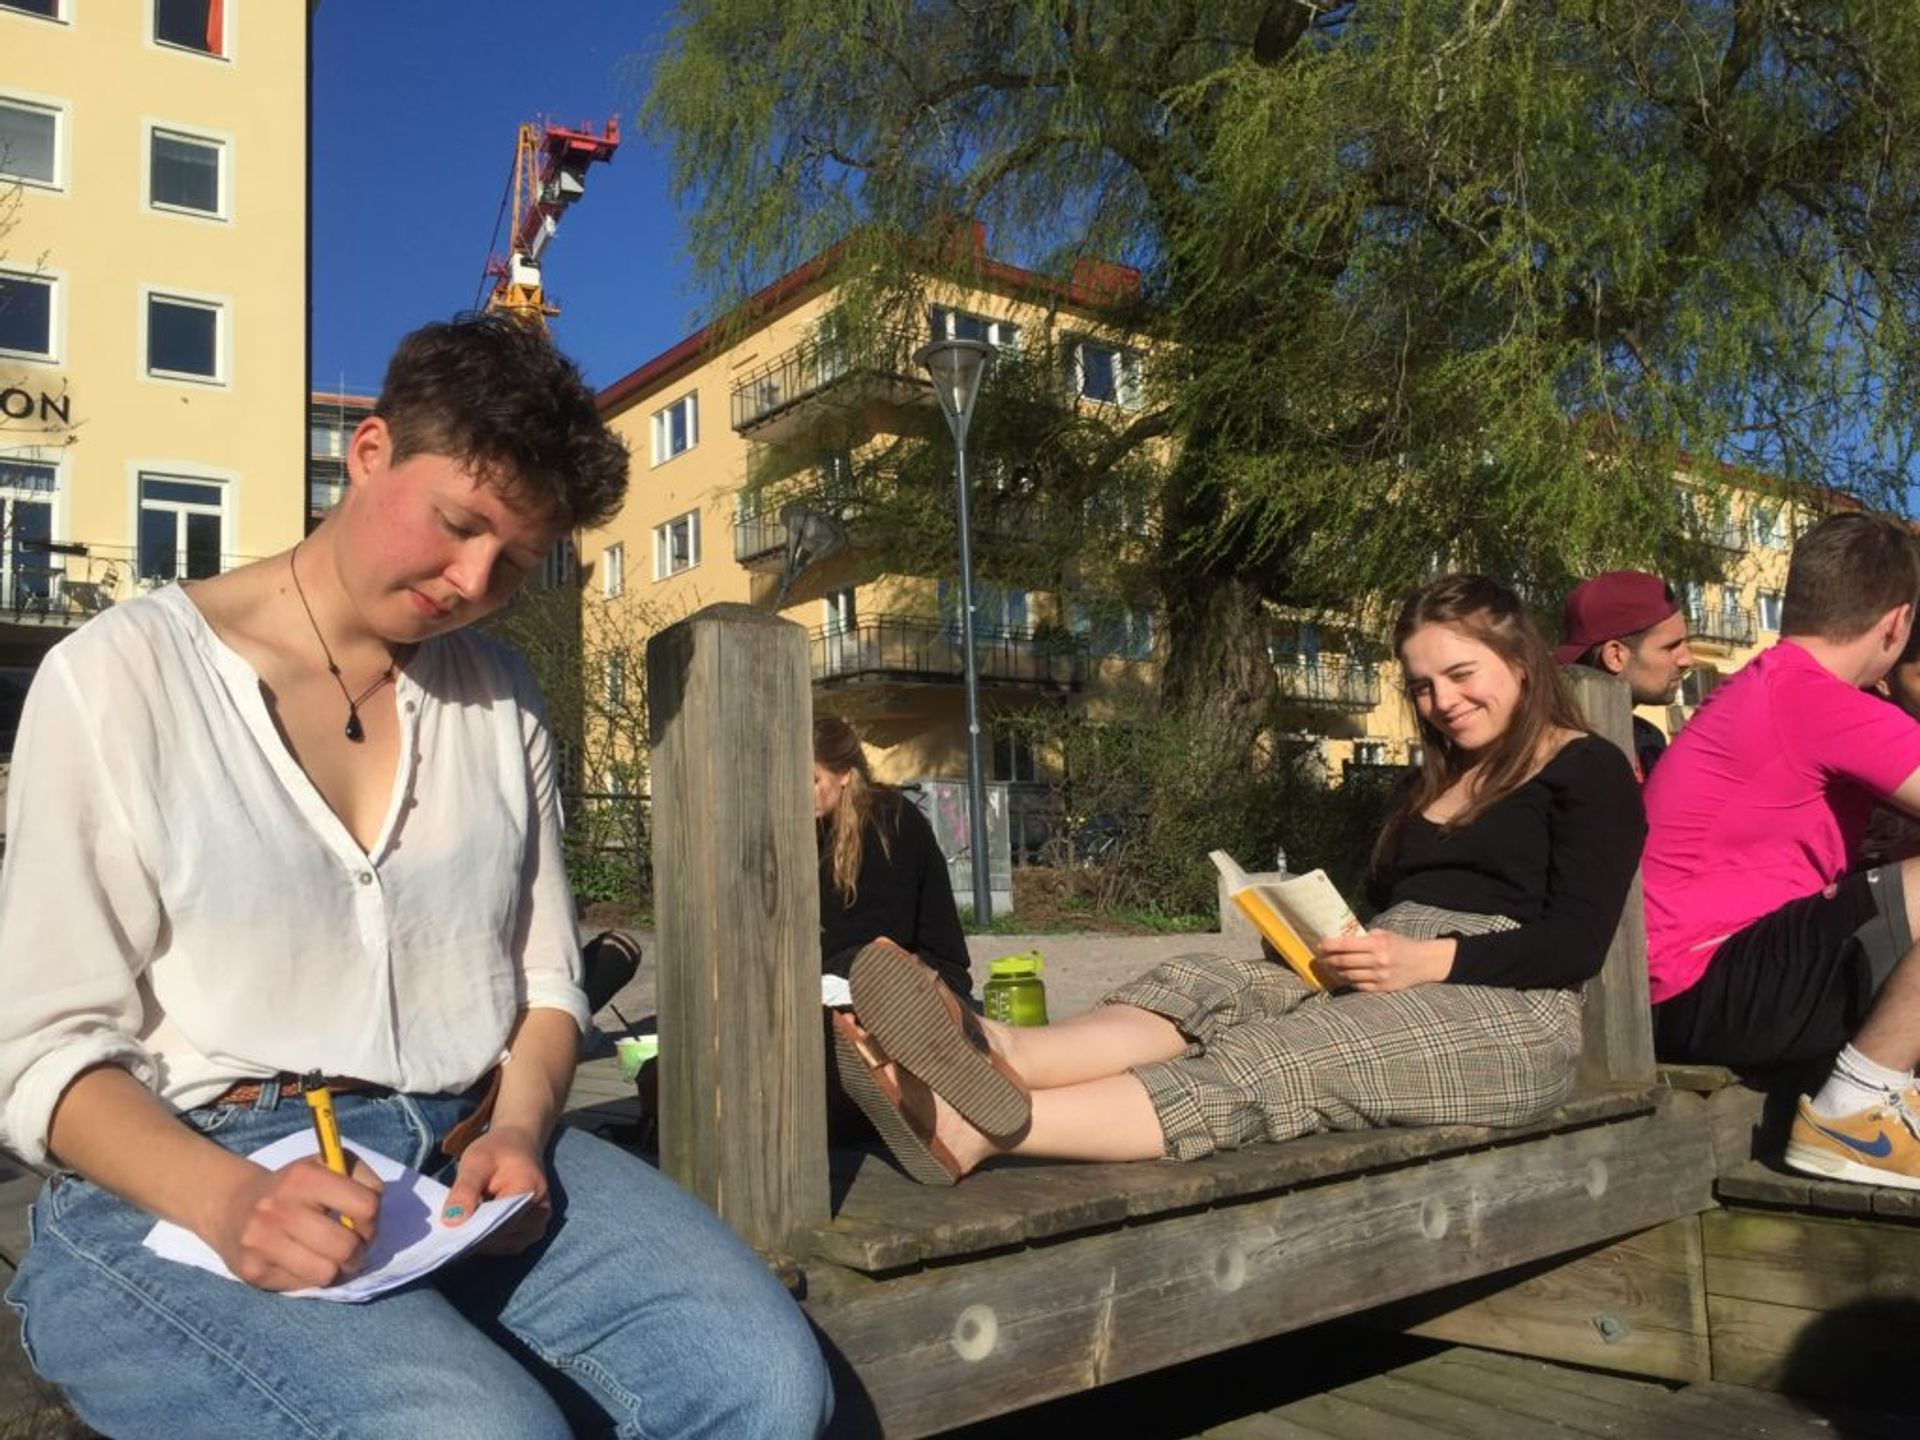 Two students sitting on wooden steps by the river reading and taking notes.